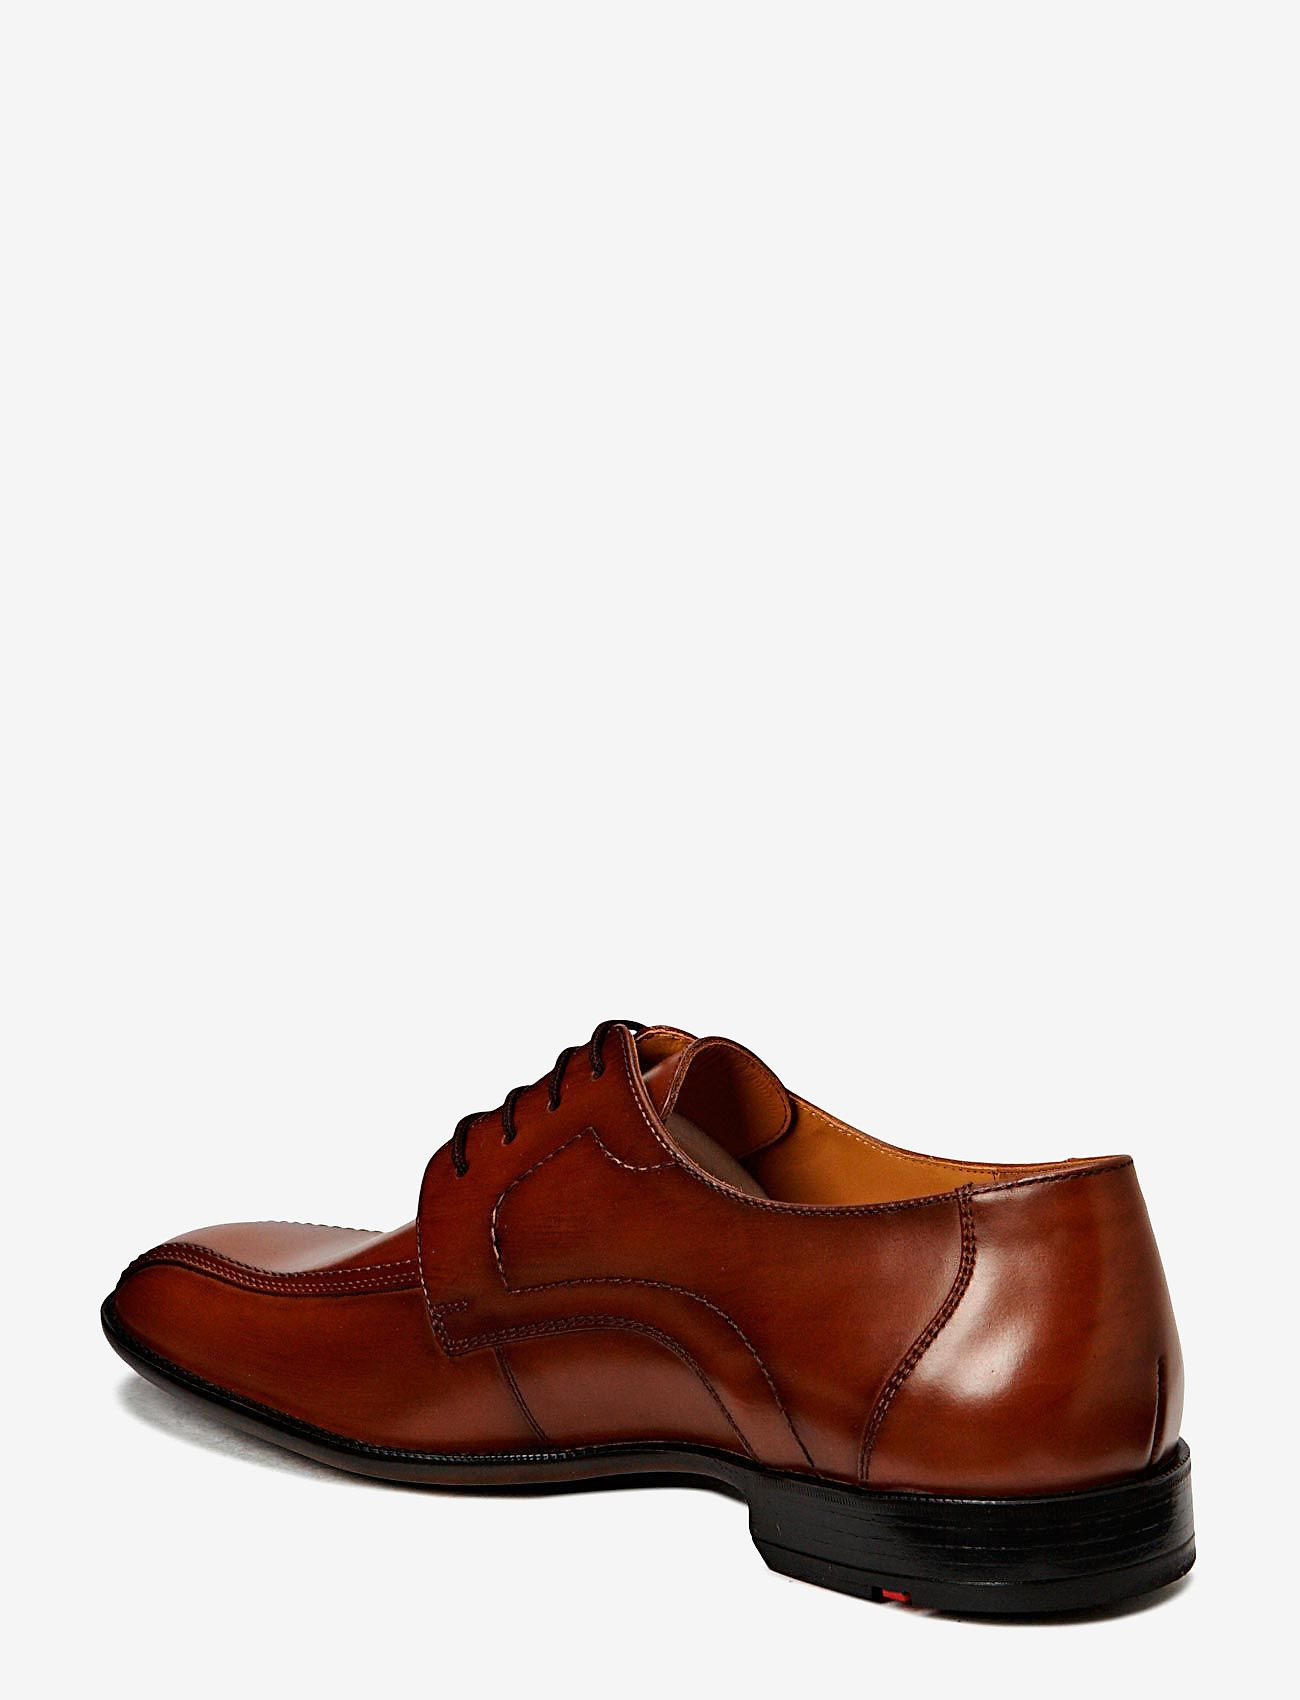 Lloyd - GAMON - laced shoes - reh - 1